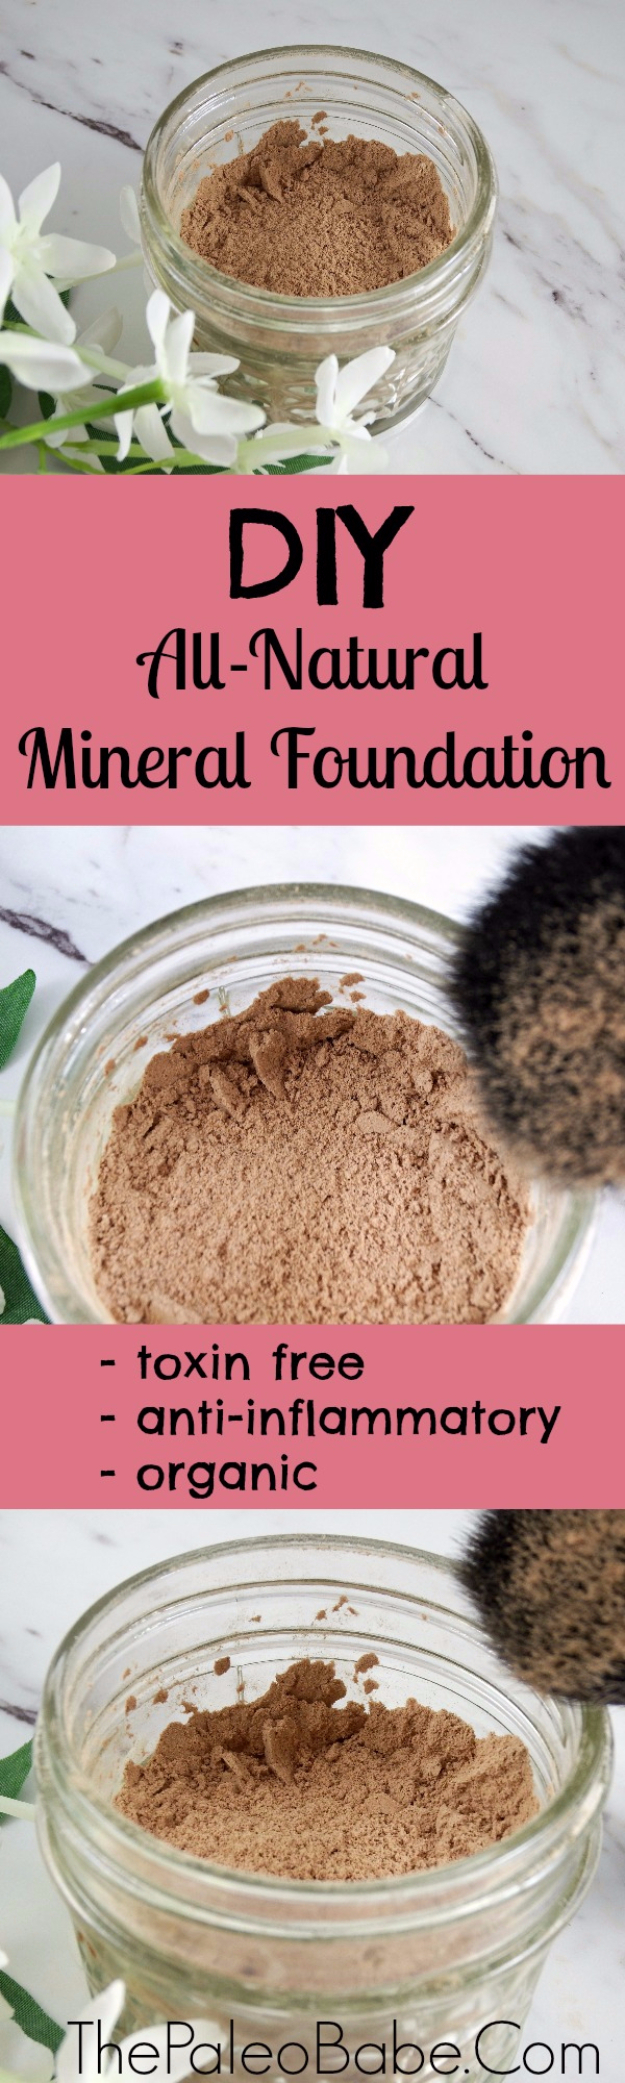 Best DIY Hacks for The New Year - Make Your Own DIY Natural Non-Toxic Mineral Foundation - Easy Organizing and Home Improvement Ideas - Tips and Tricks for Quick DIY Ideas to Simplify Life - Step by Step Hack Tutorials for Genius Ways to Make Quick Things Easier #diyhacks #hacks